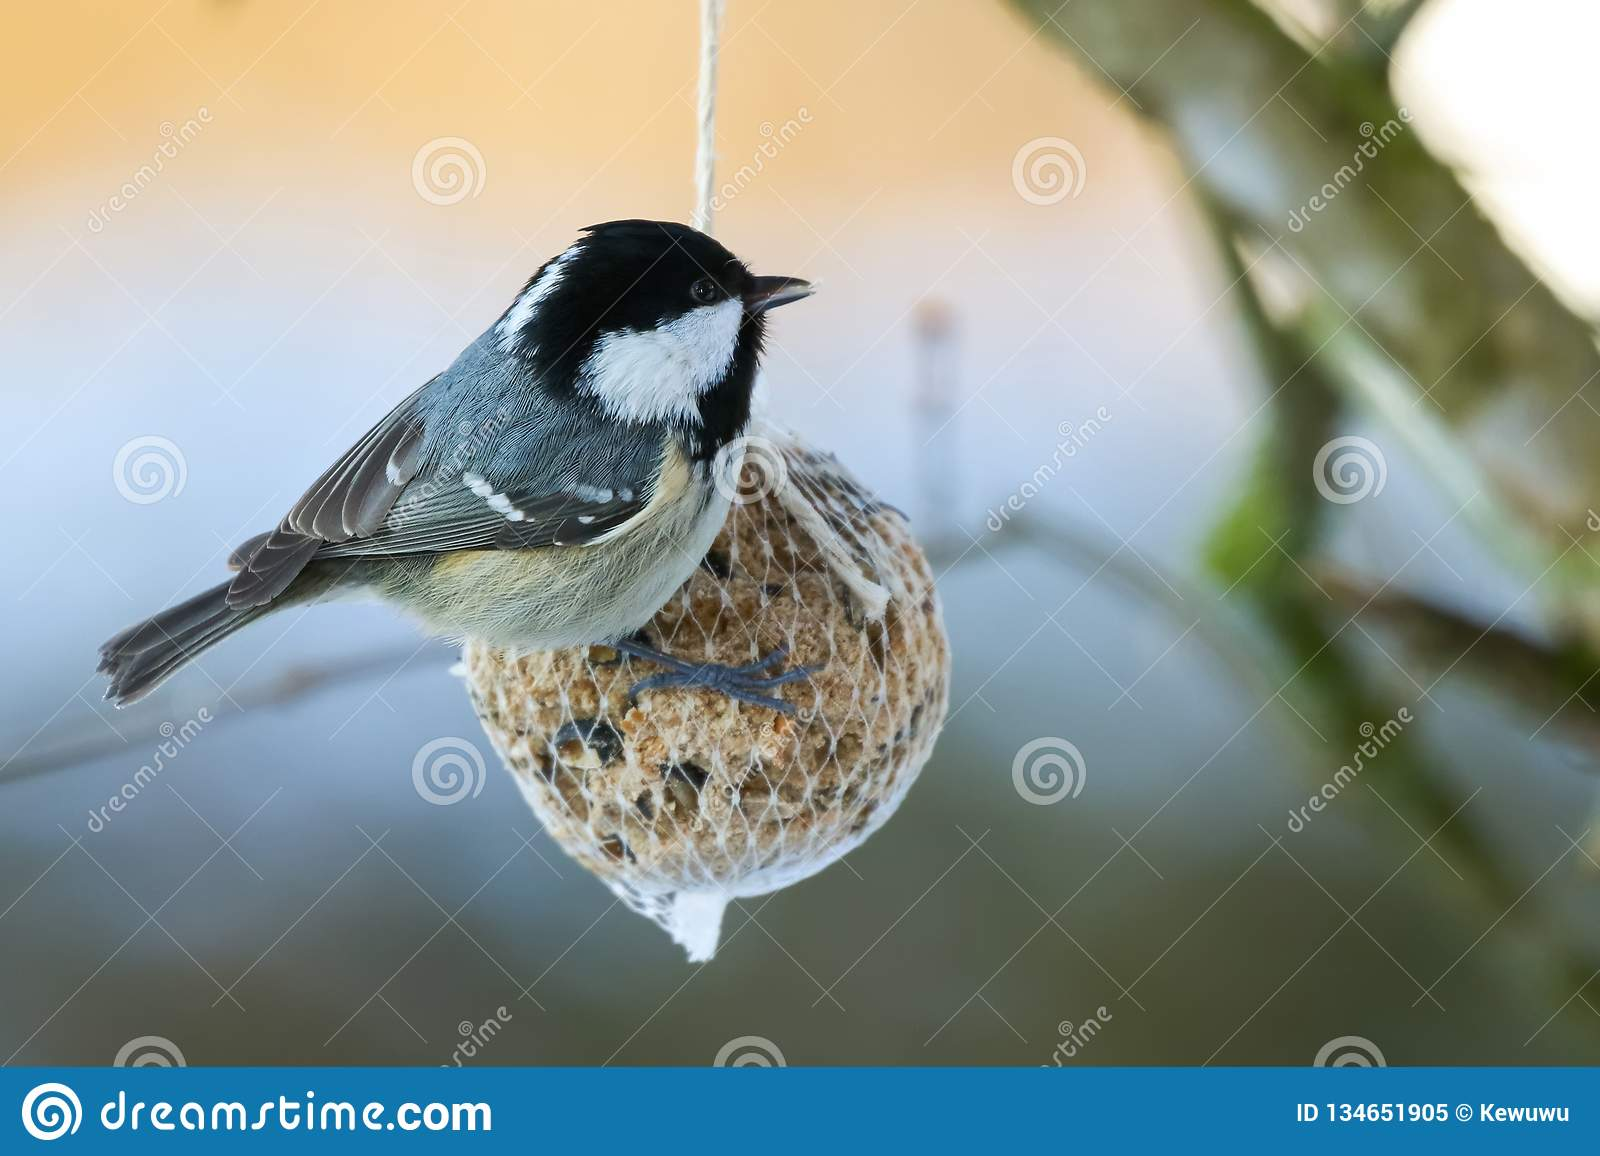 Coal tit bird on nuts seeds in meshed bag. Small passerine on suet treat feeder during winter